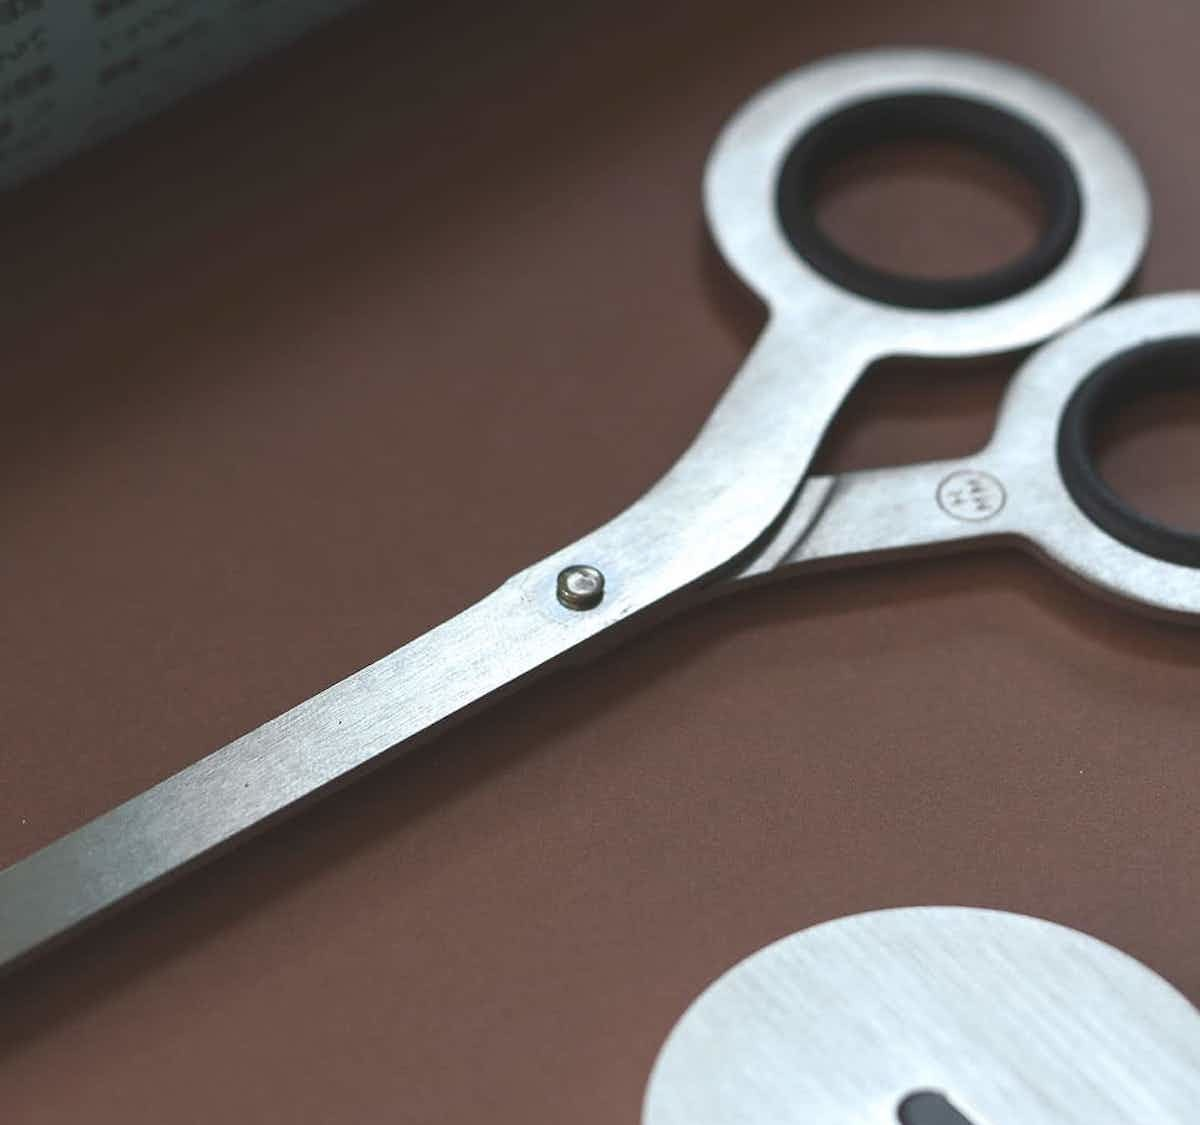 HMM 2-in-1 Minimal Scissors have a standing base that displays them